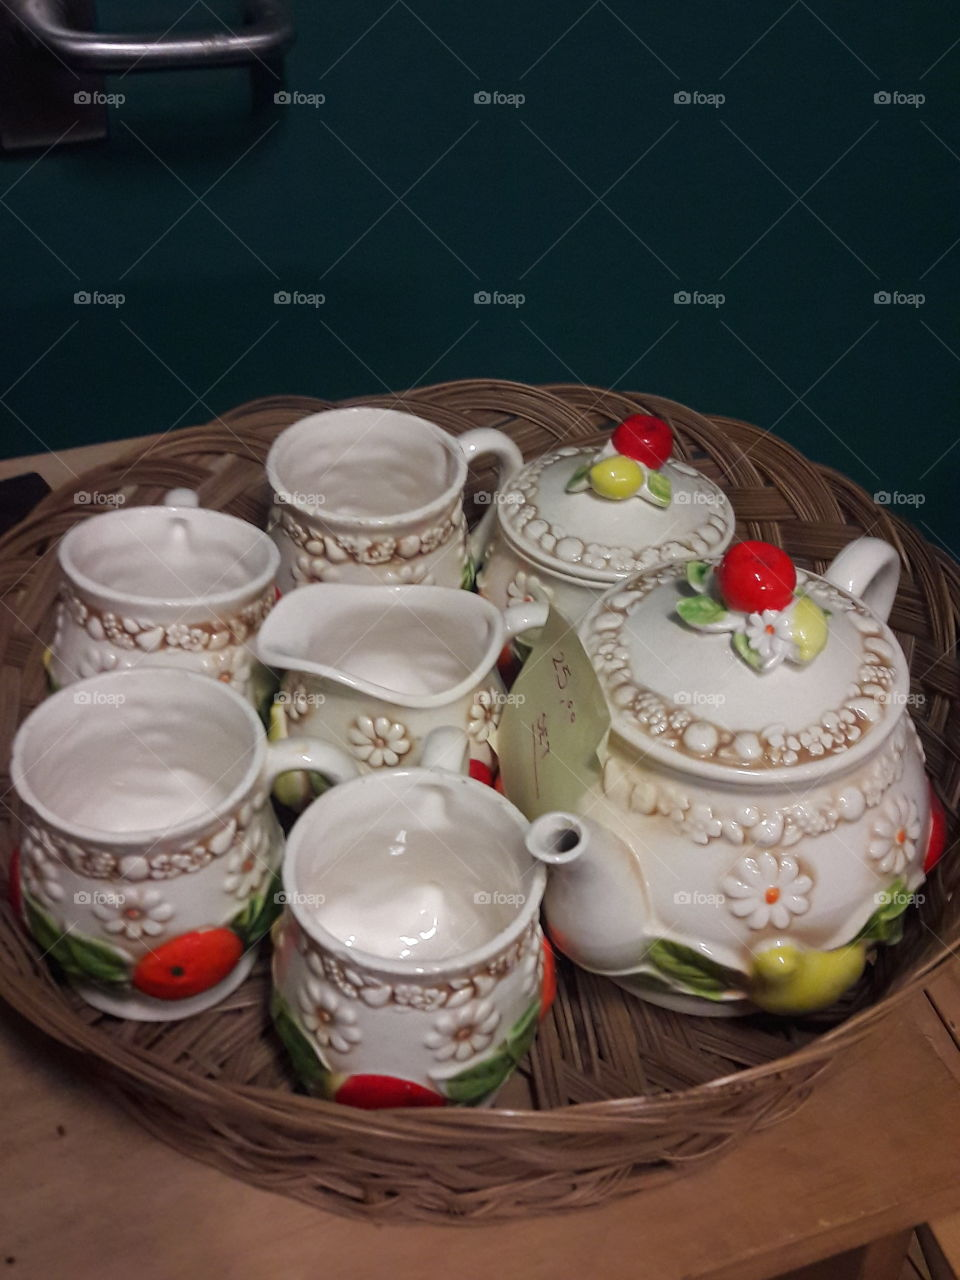 a tea set in a thrift store waiting to be bought.